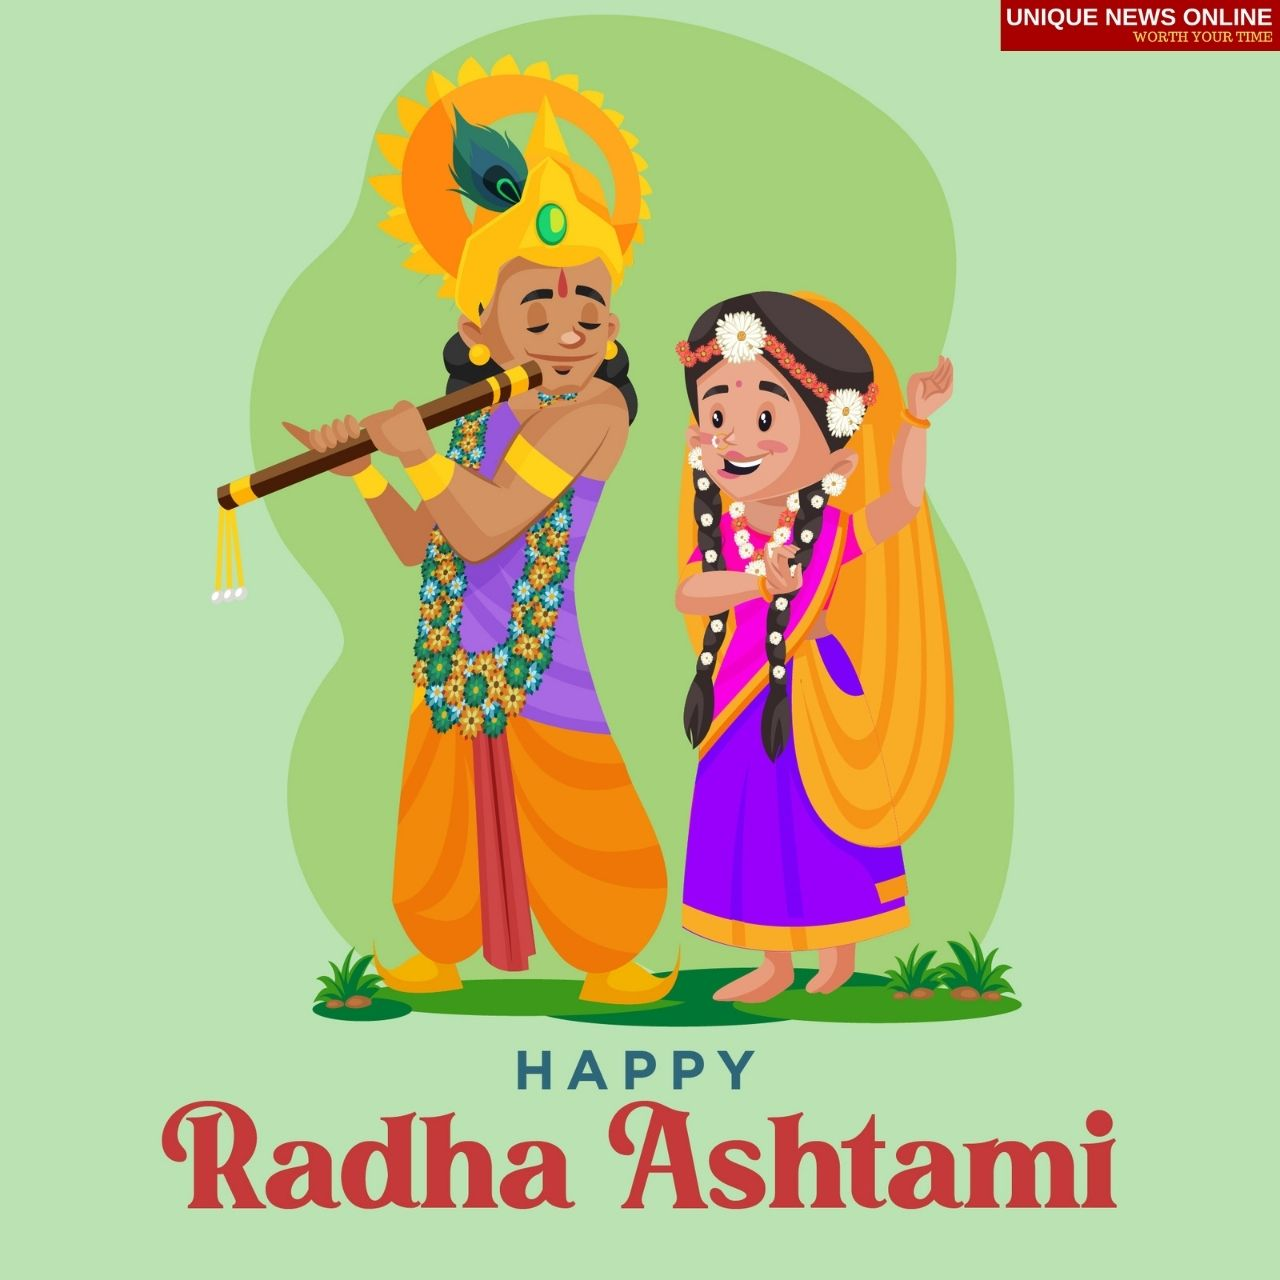 Happy Radha Ashtami 2021 Wishes, Quotes, HD Images, Status, and Greetings to greet anyone